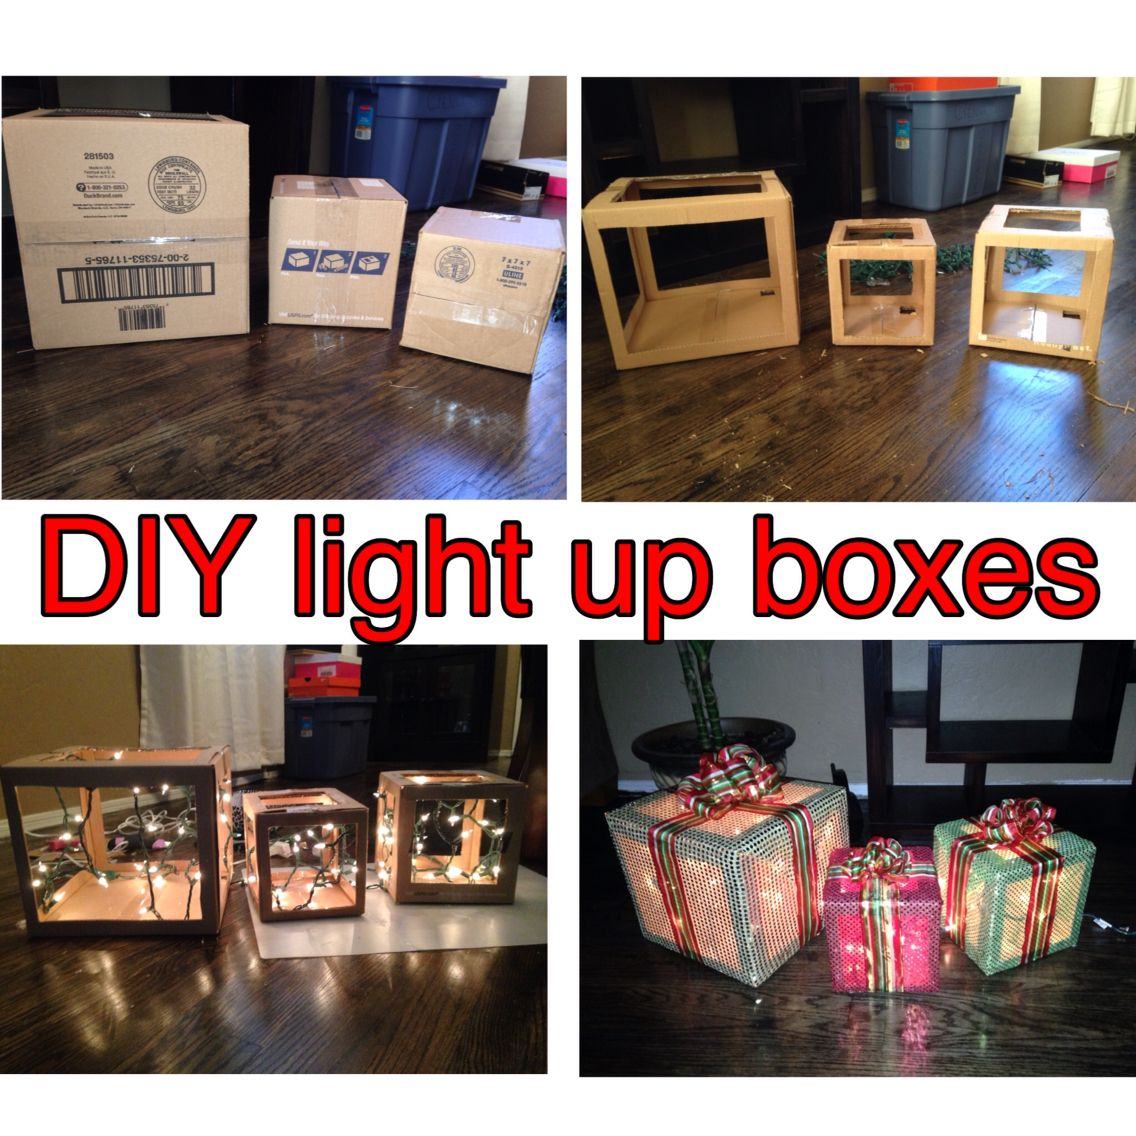 diy light up presents out of cardboard boxes need glue gun string of 100 lights sheer fabric ribbon and of course 3 cardboard boxes 3 different